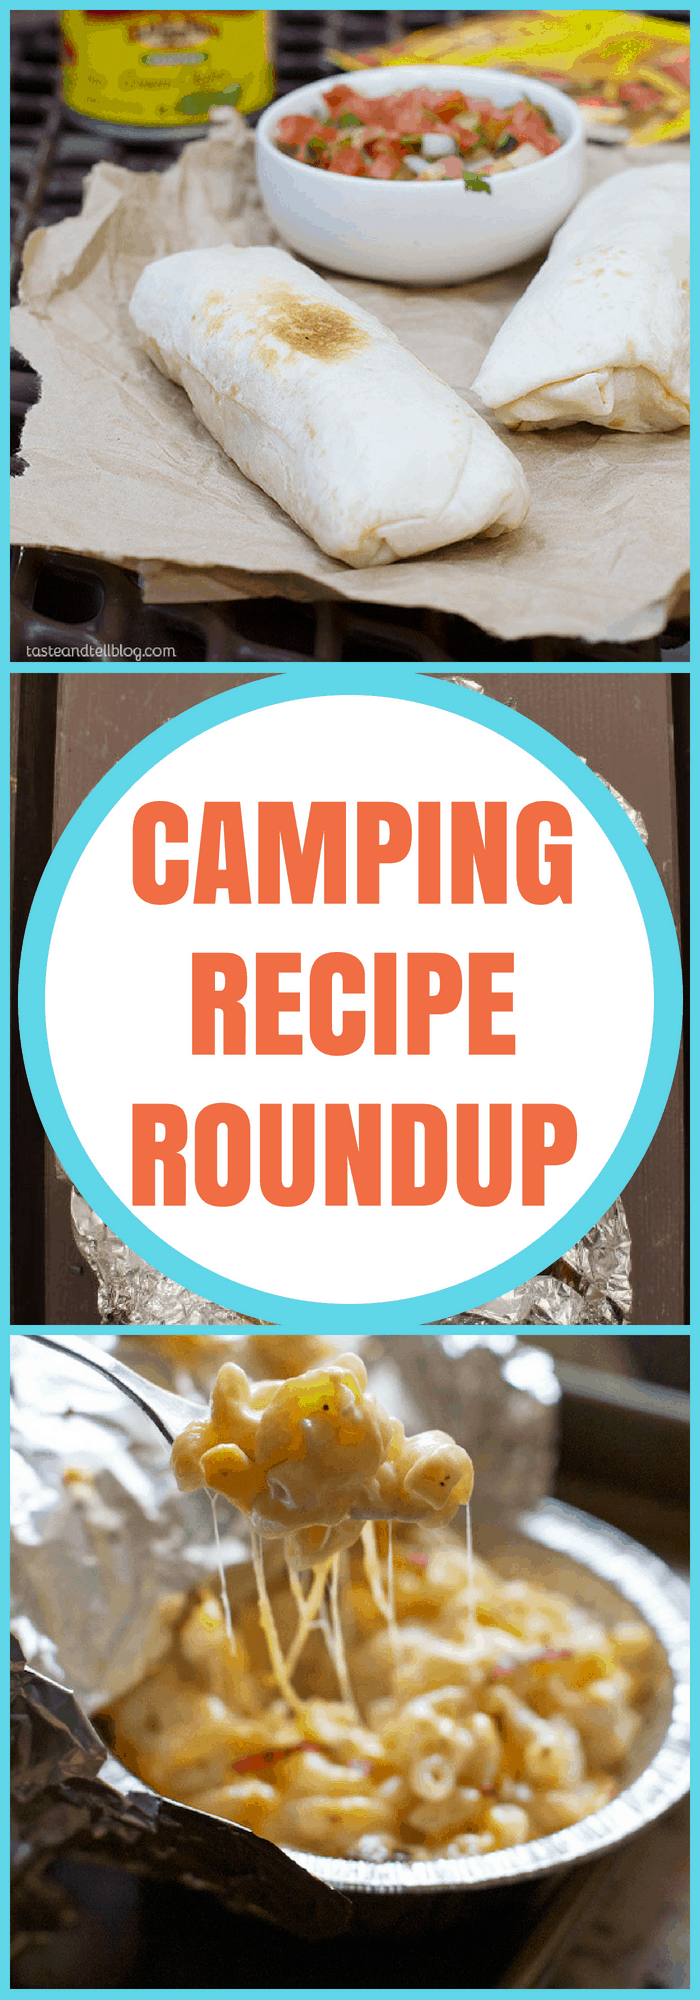 Family--Camping Recipe Roundup--The Organized Mom